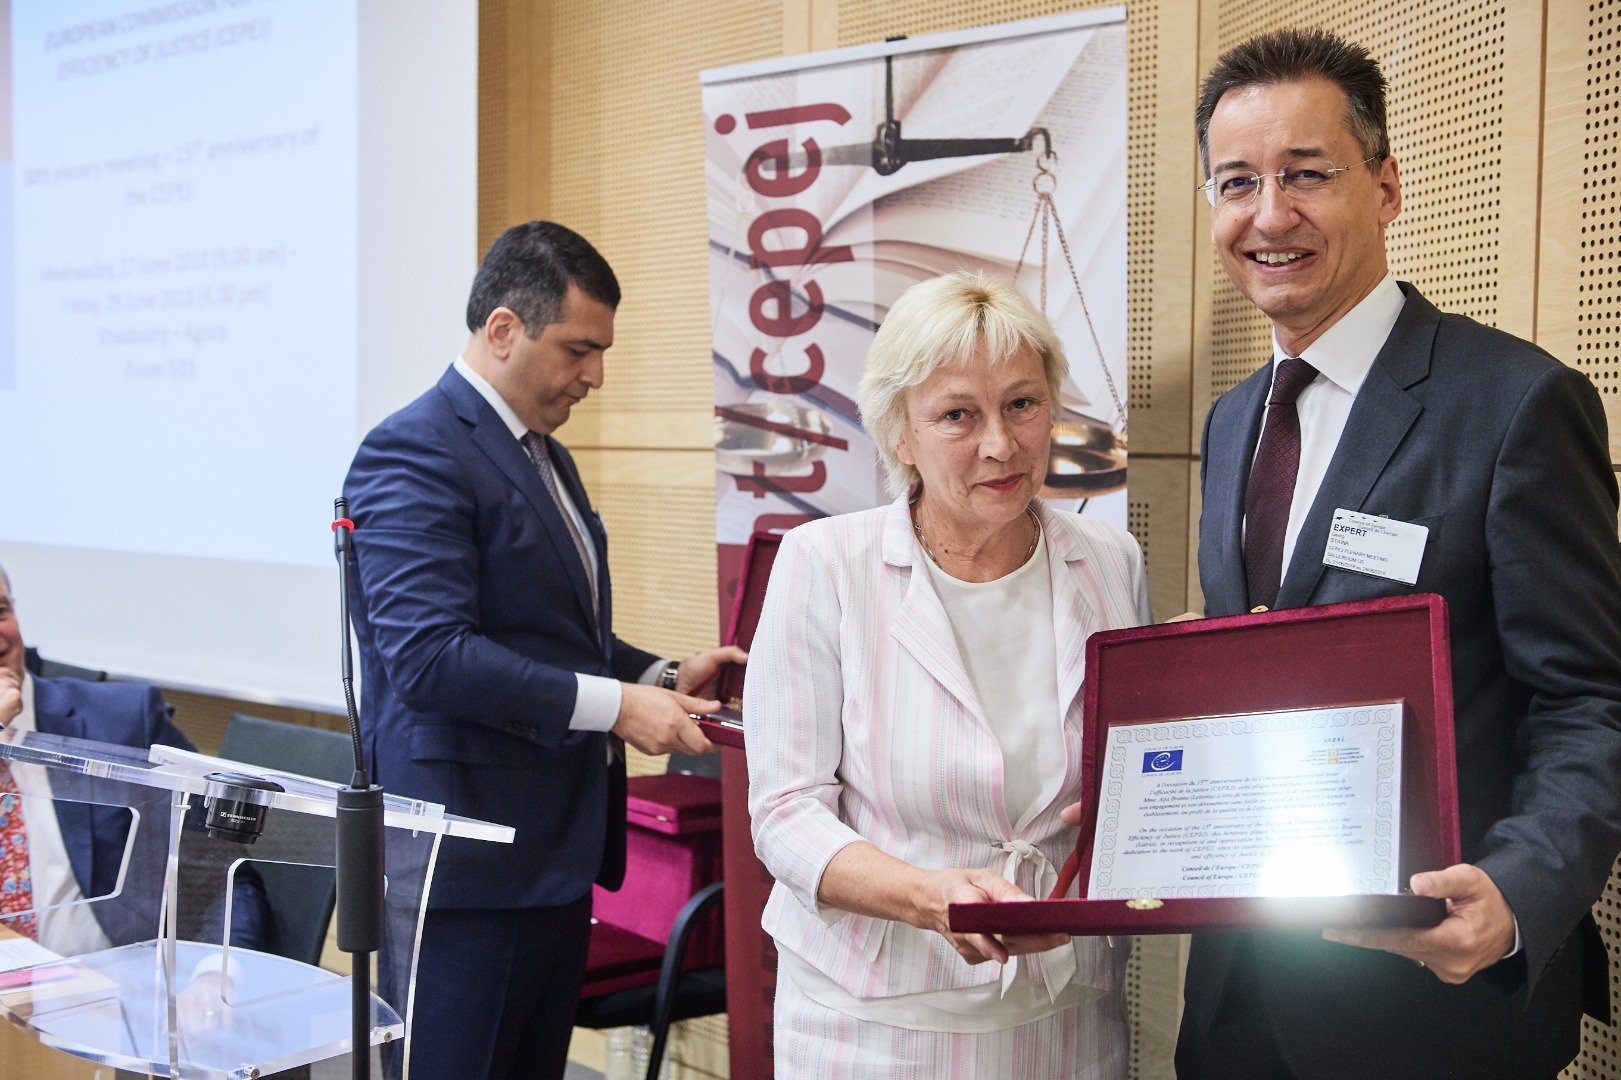 27.06.2018. At the plenary session on the 15th anniversary of the European Commission for the Efficiency of Justice (CEPEJ), Latvia's representative judge Aija Branta, received the award – a honorary plaque for contributing to the improvement of the quality and efficiency of justice in Europe. Colleagues from Andora, Finland, Germany and Hungary also received the award. The award was presented by CEPEJ President Georg Stawa.